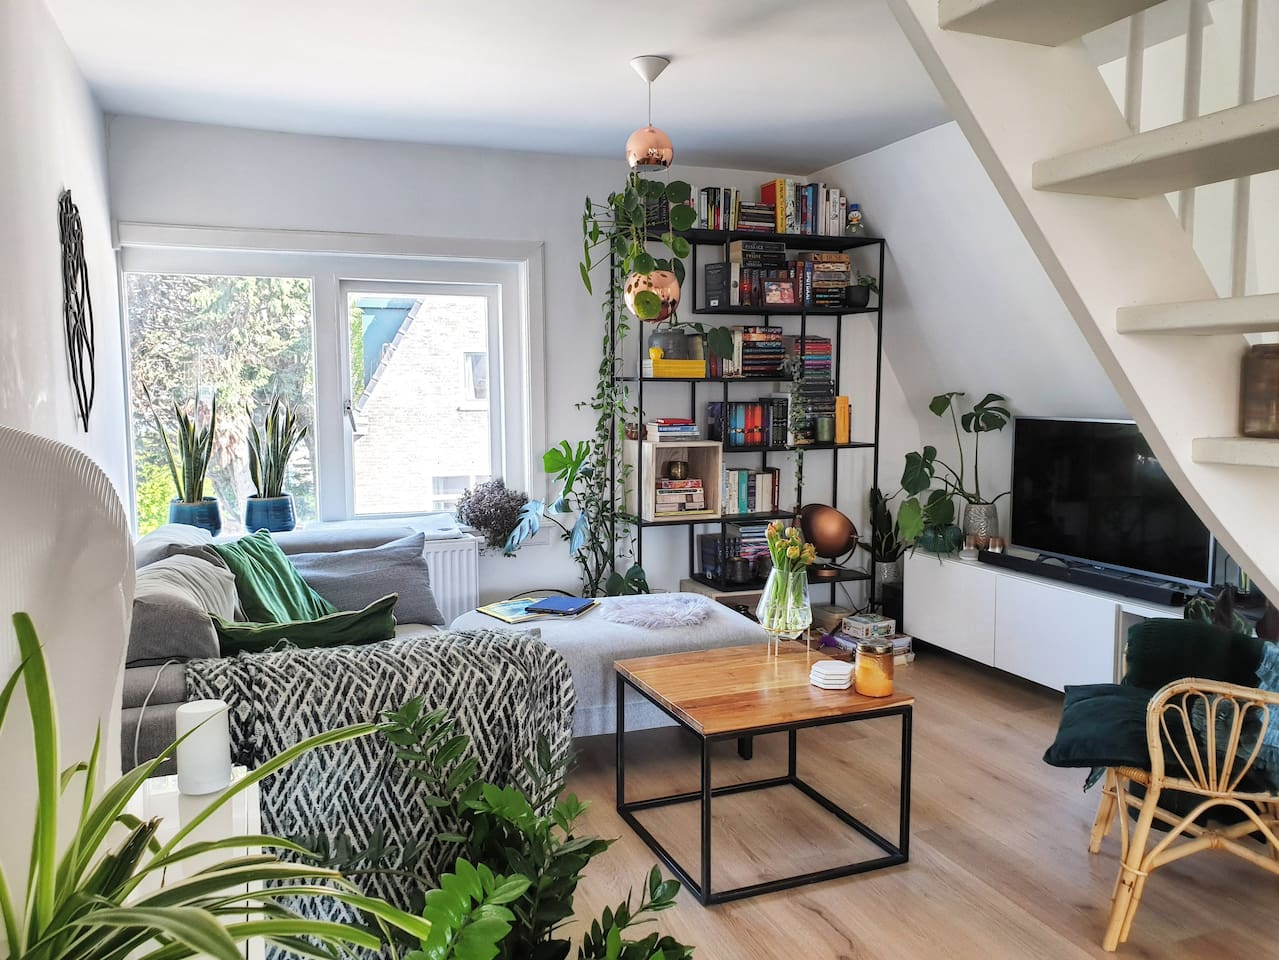 The cozy, comfortable and green living room. You'll feel right at home.